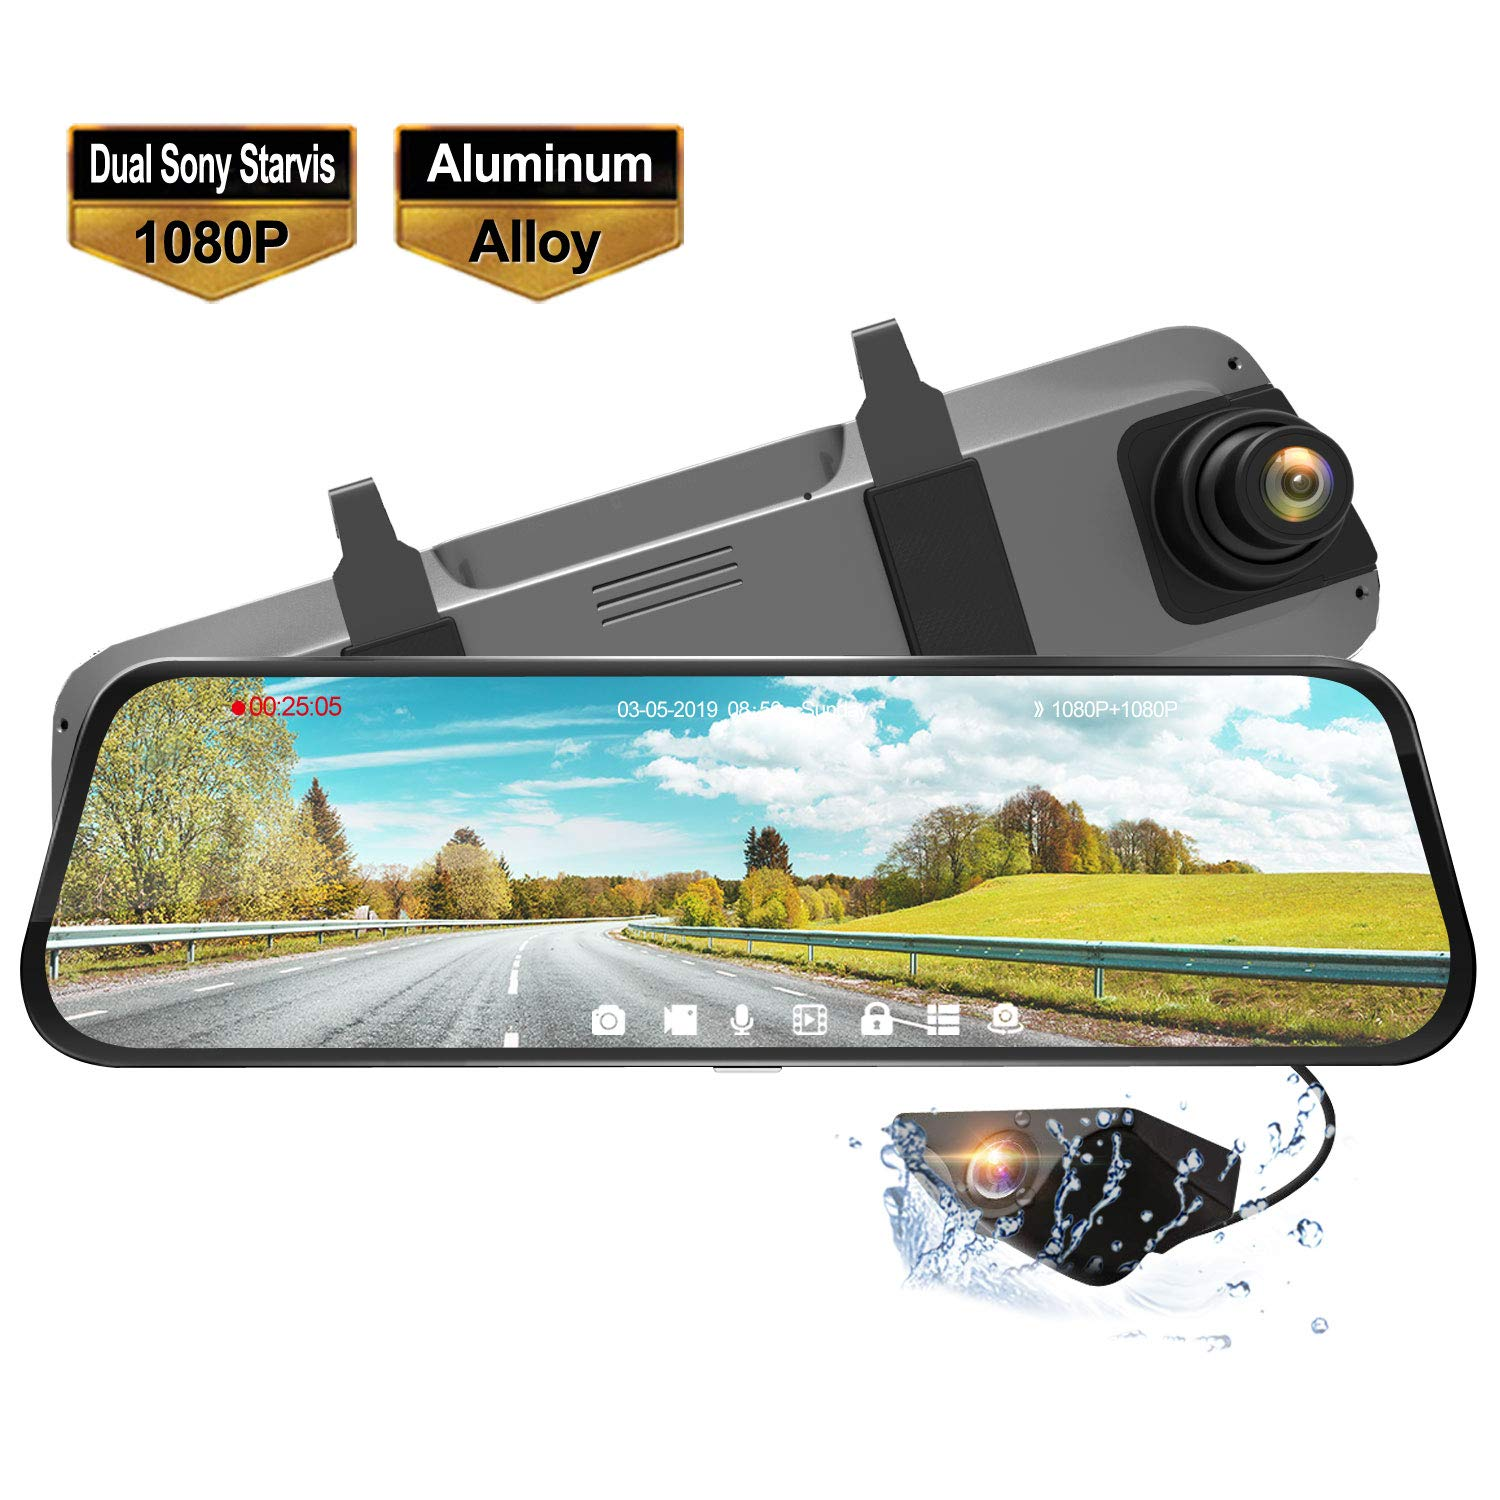 Spedal M9 E-Mirror Dash Cam Rearview Camera with Sony Starvis Lens, Full HD Dual Waterproof 1080P Front and Rear View Mirror,9.66'' Full Touch Screen, G-Sensor, WDR and Night Vision